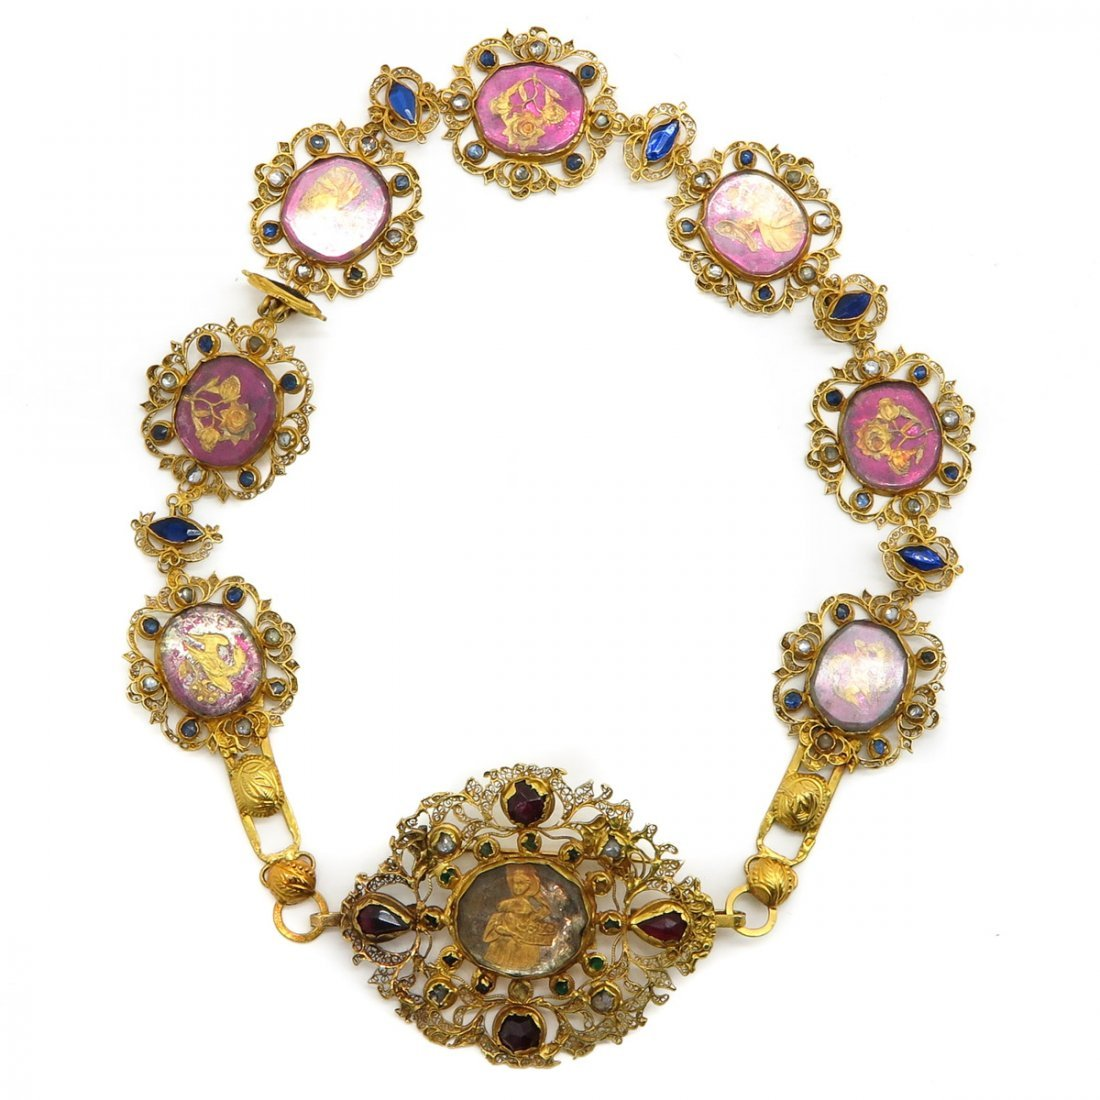 18KG Medallion Necklace with Removal Brooch